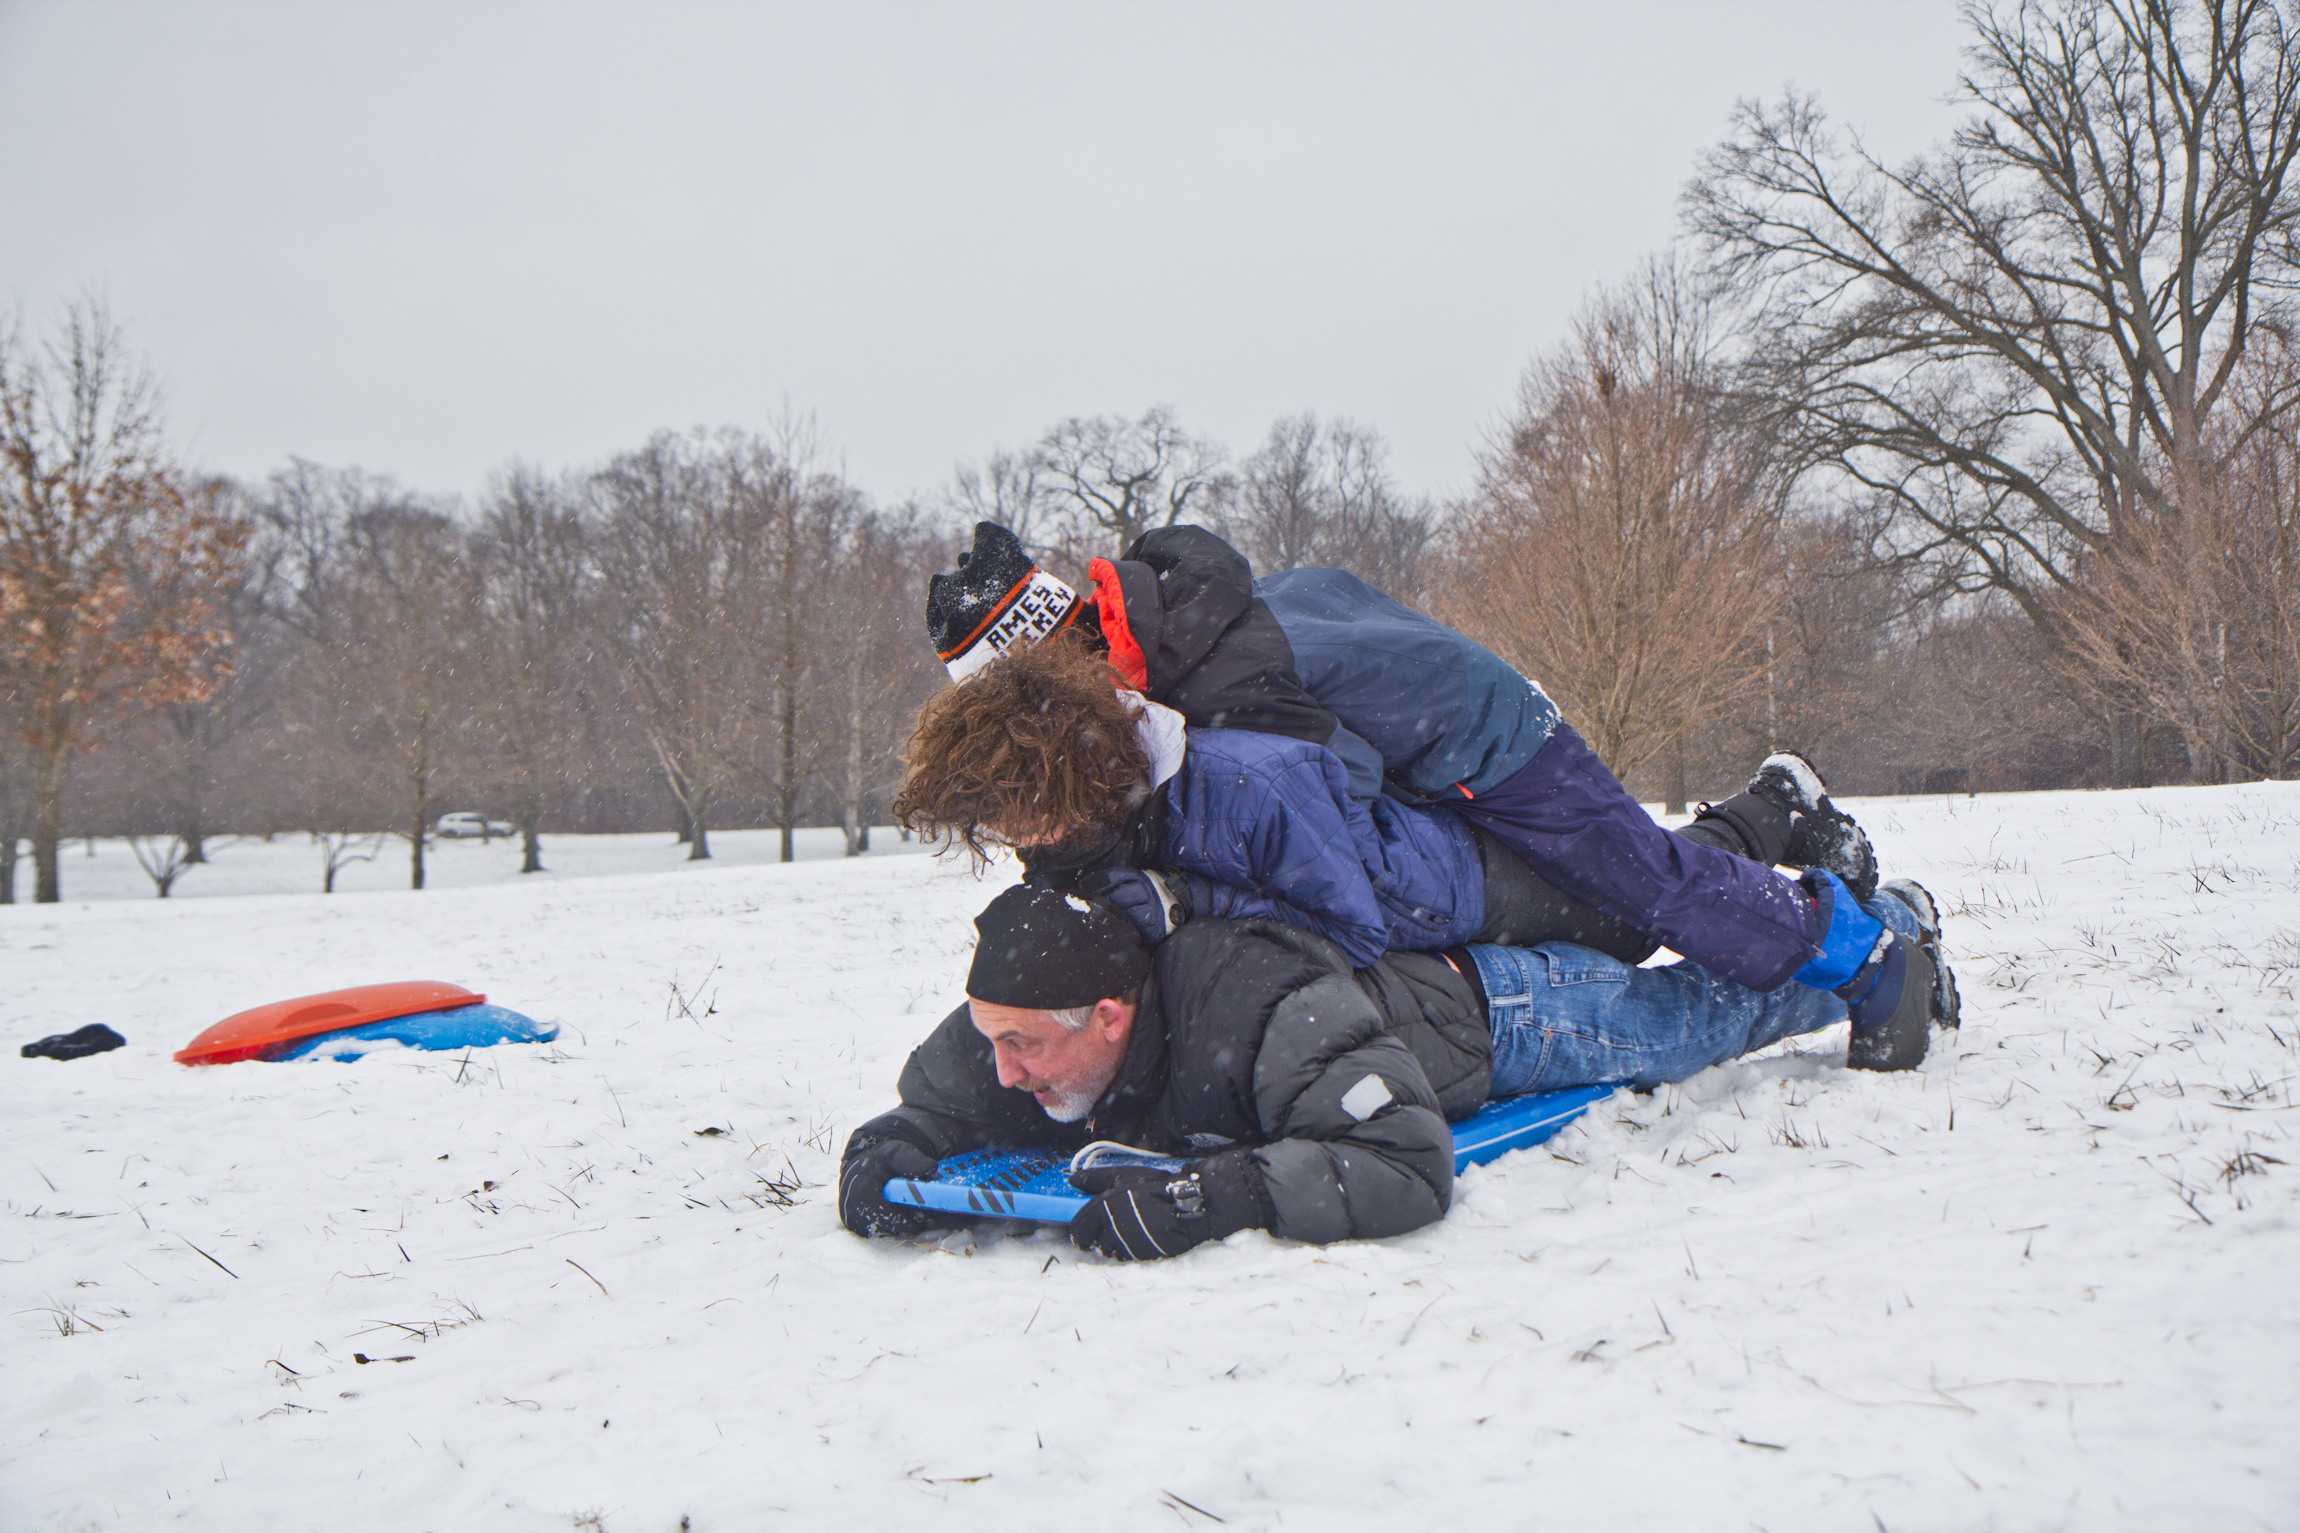 Mark Gamba, his son Luke, and friend Elias Zarin share a sled at Belmont Plateau in Philadelphia.